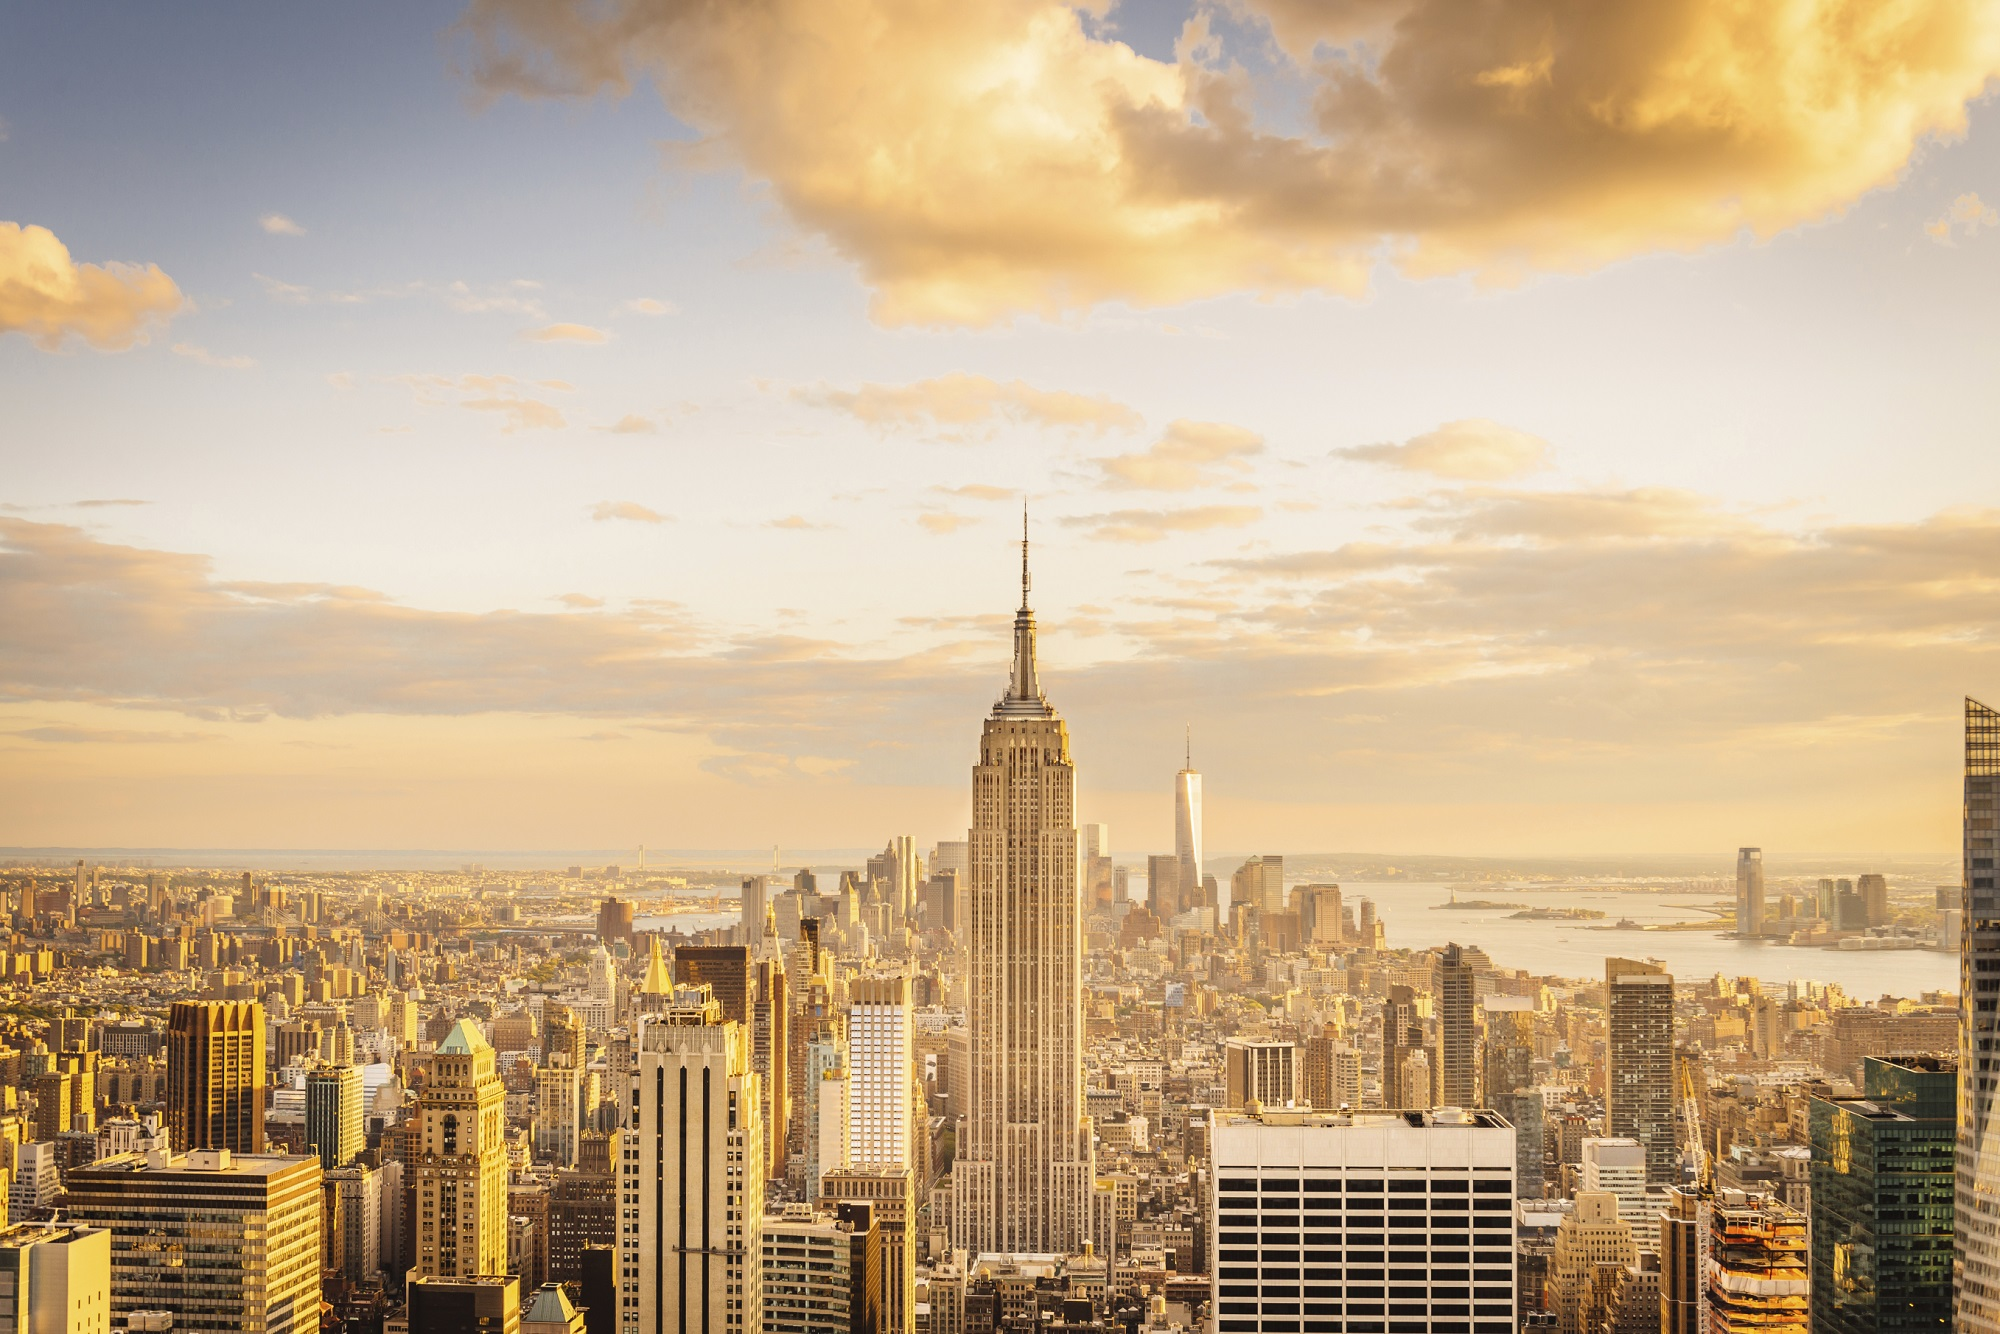 von-new-york-city-skyline-midtown-und-empire-state-building-istock_000068418081_large